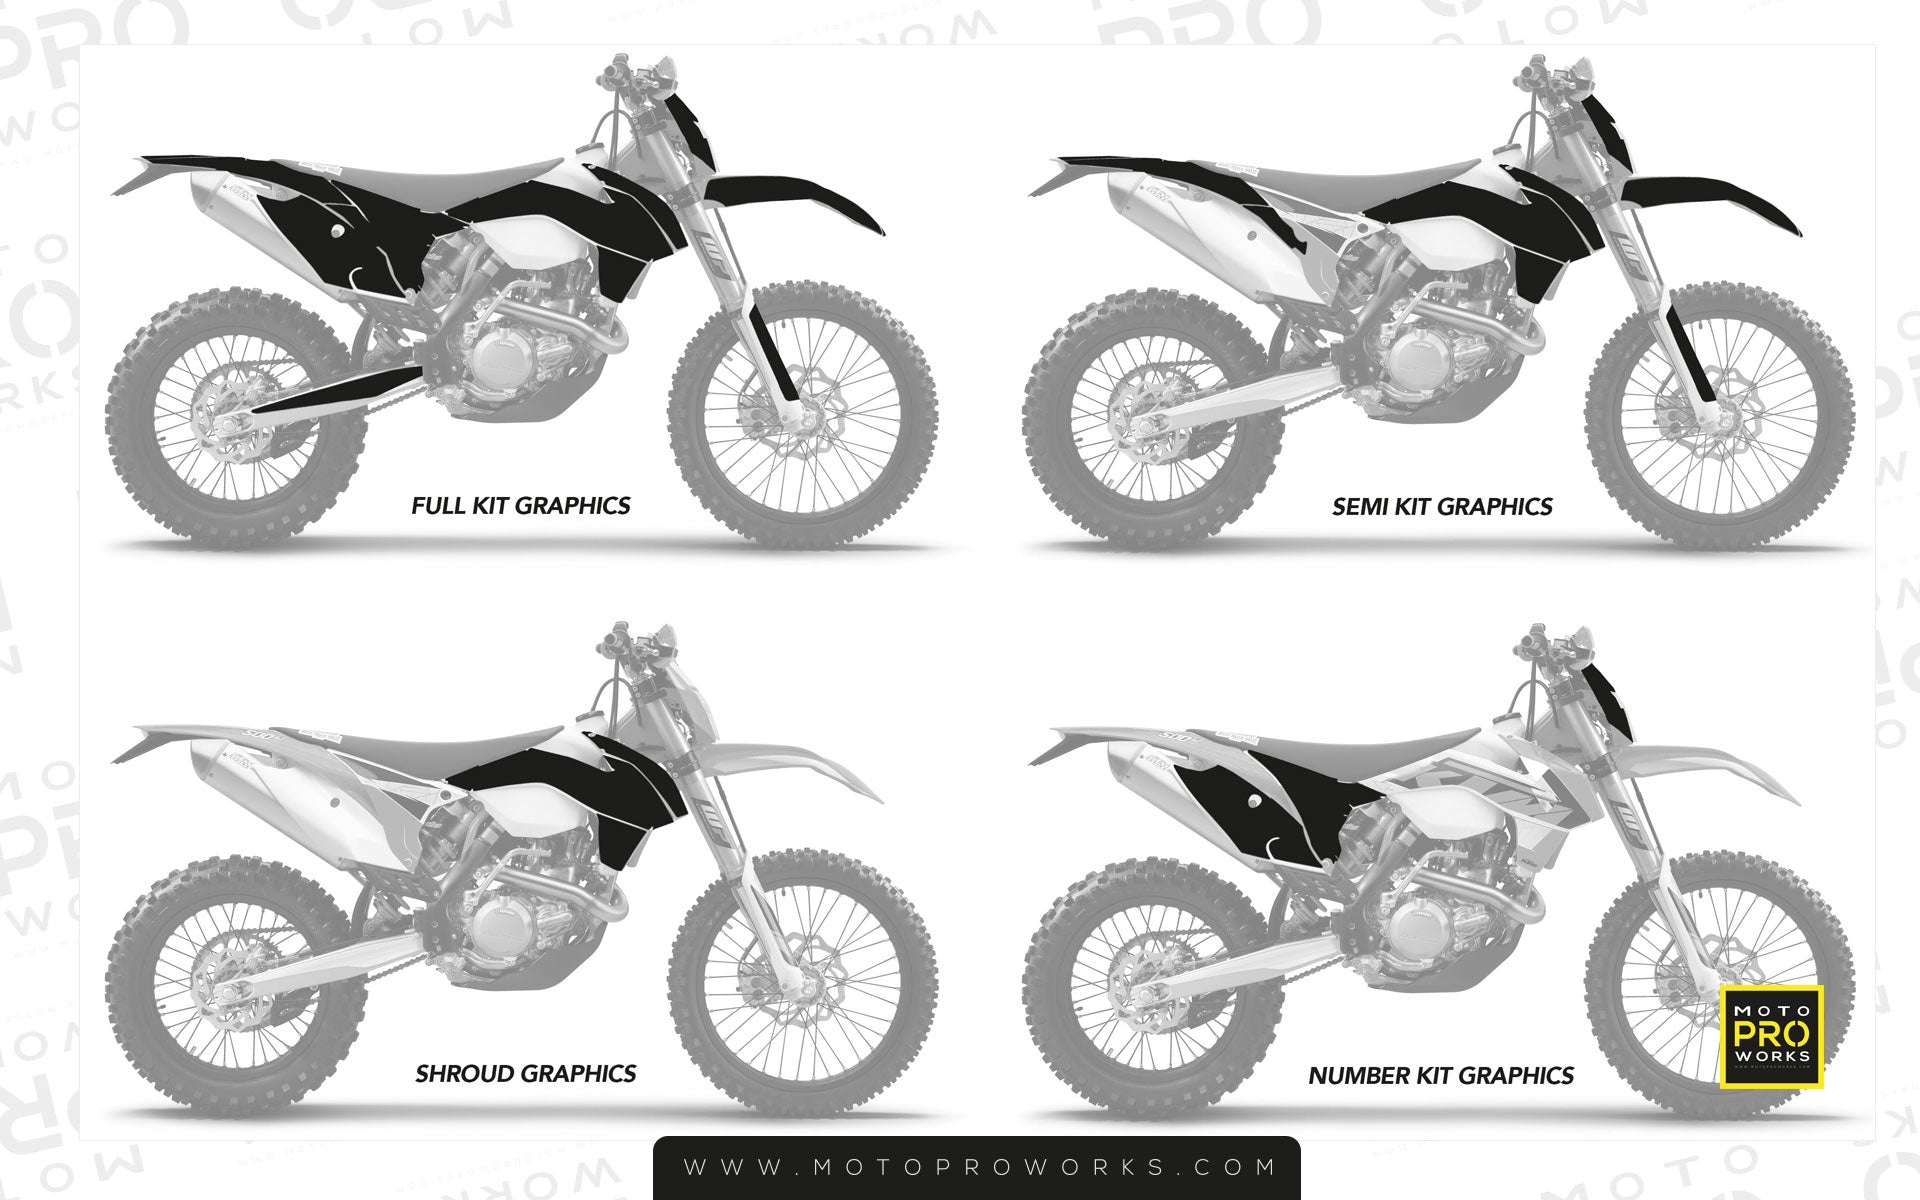 Graphic kit sizes MotoProWorks